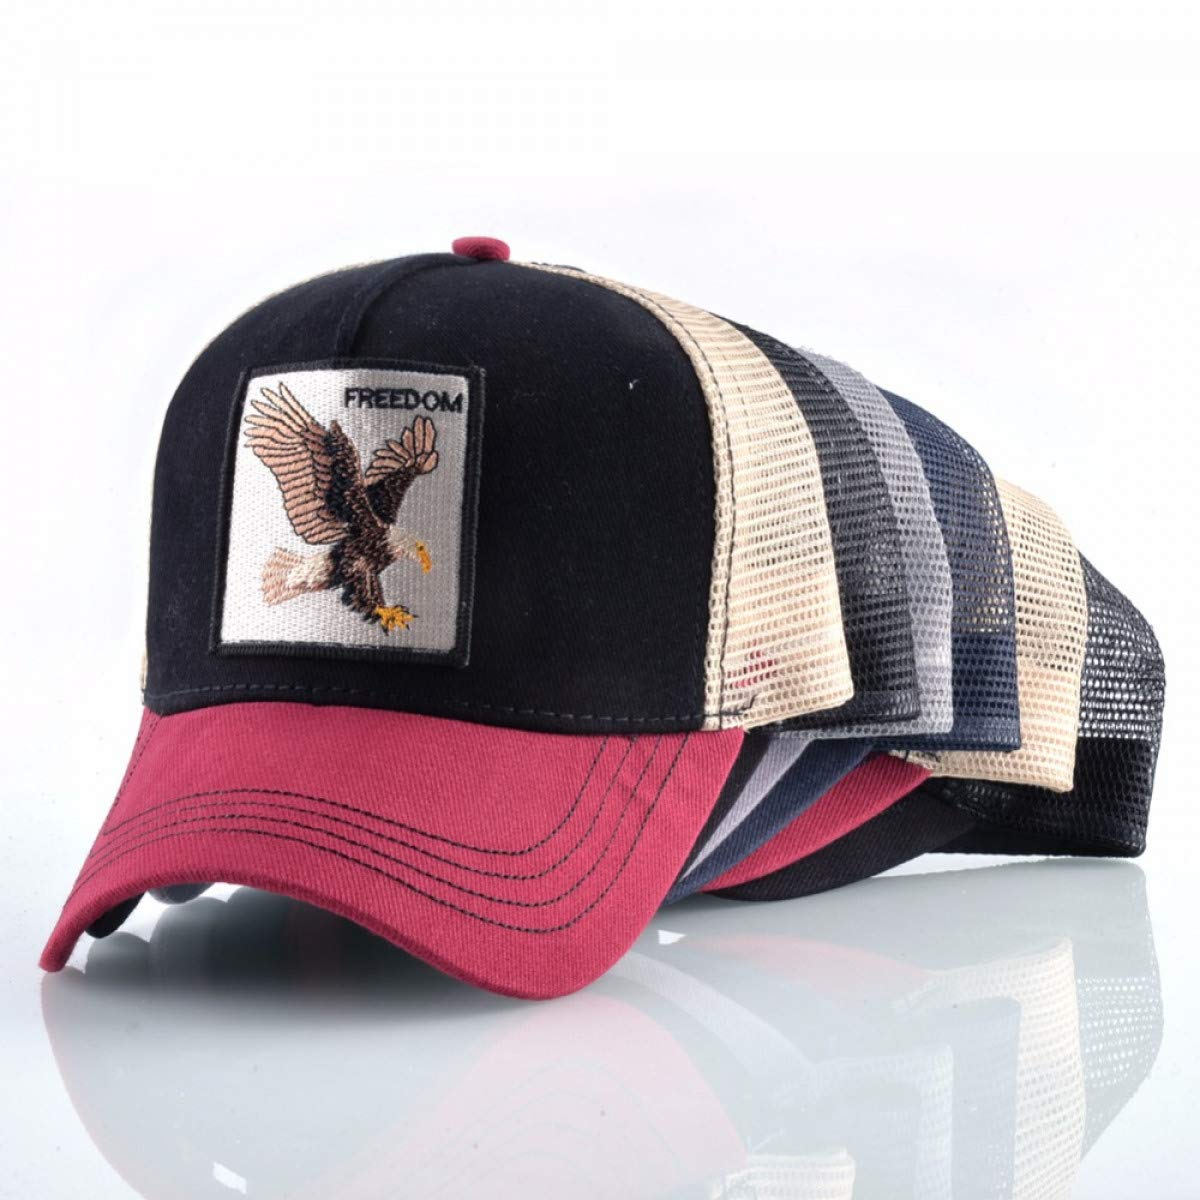 Mens Animal Farm Snap Back Trucker Hat Baseball Caps Women Snapback Hip Hop Hat at Amazon Mens Clothing store: